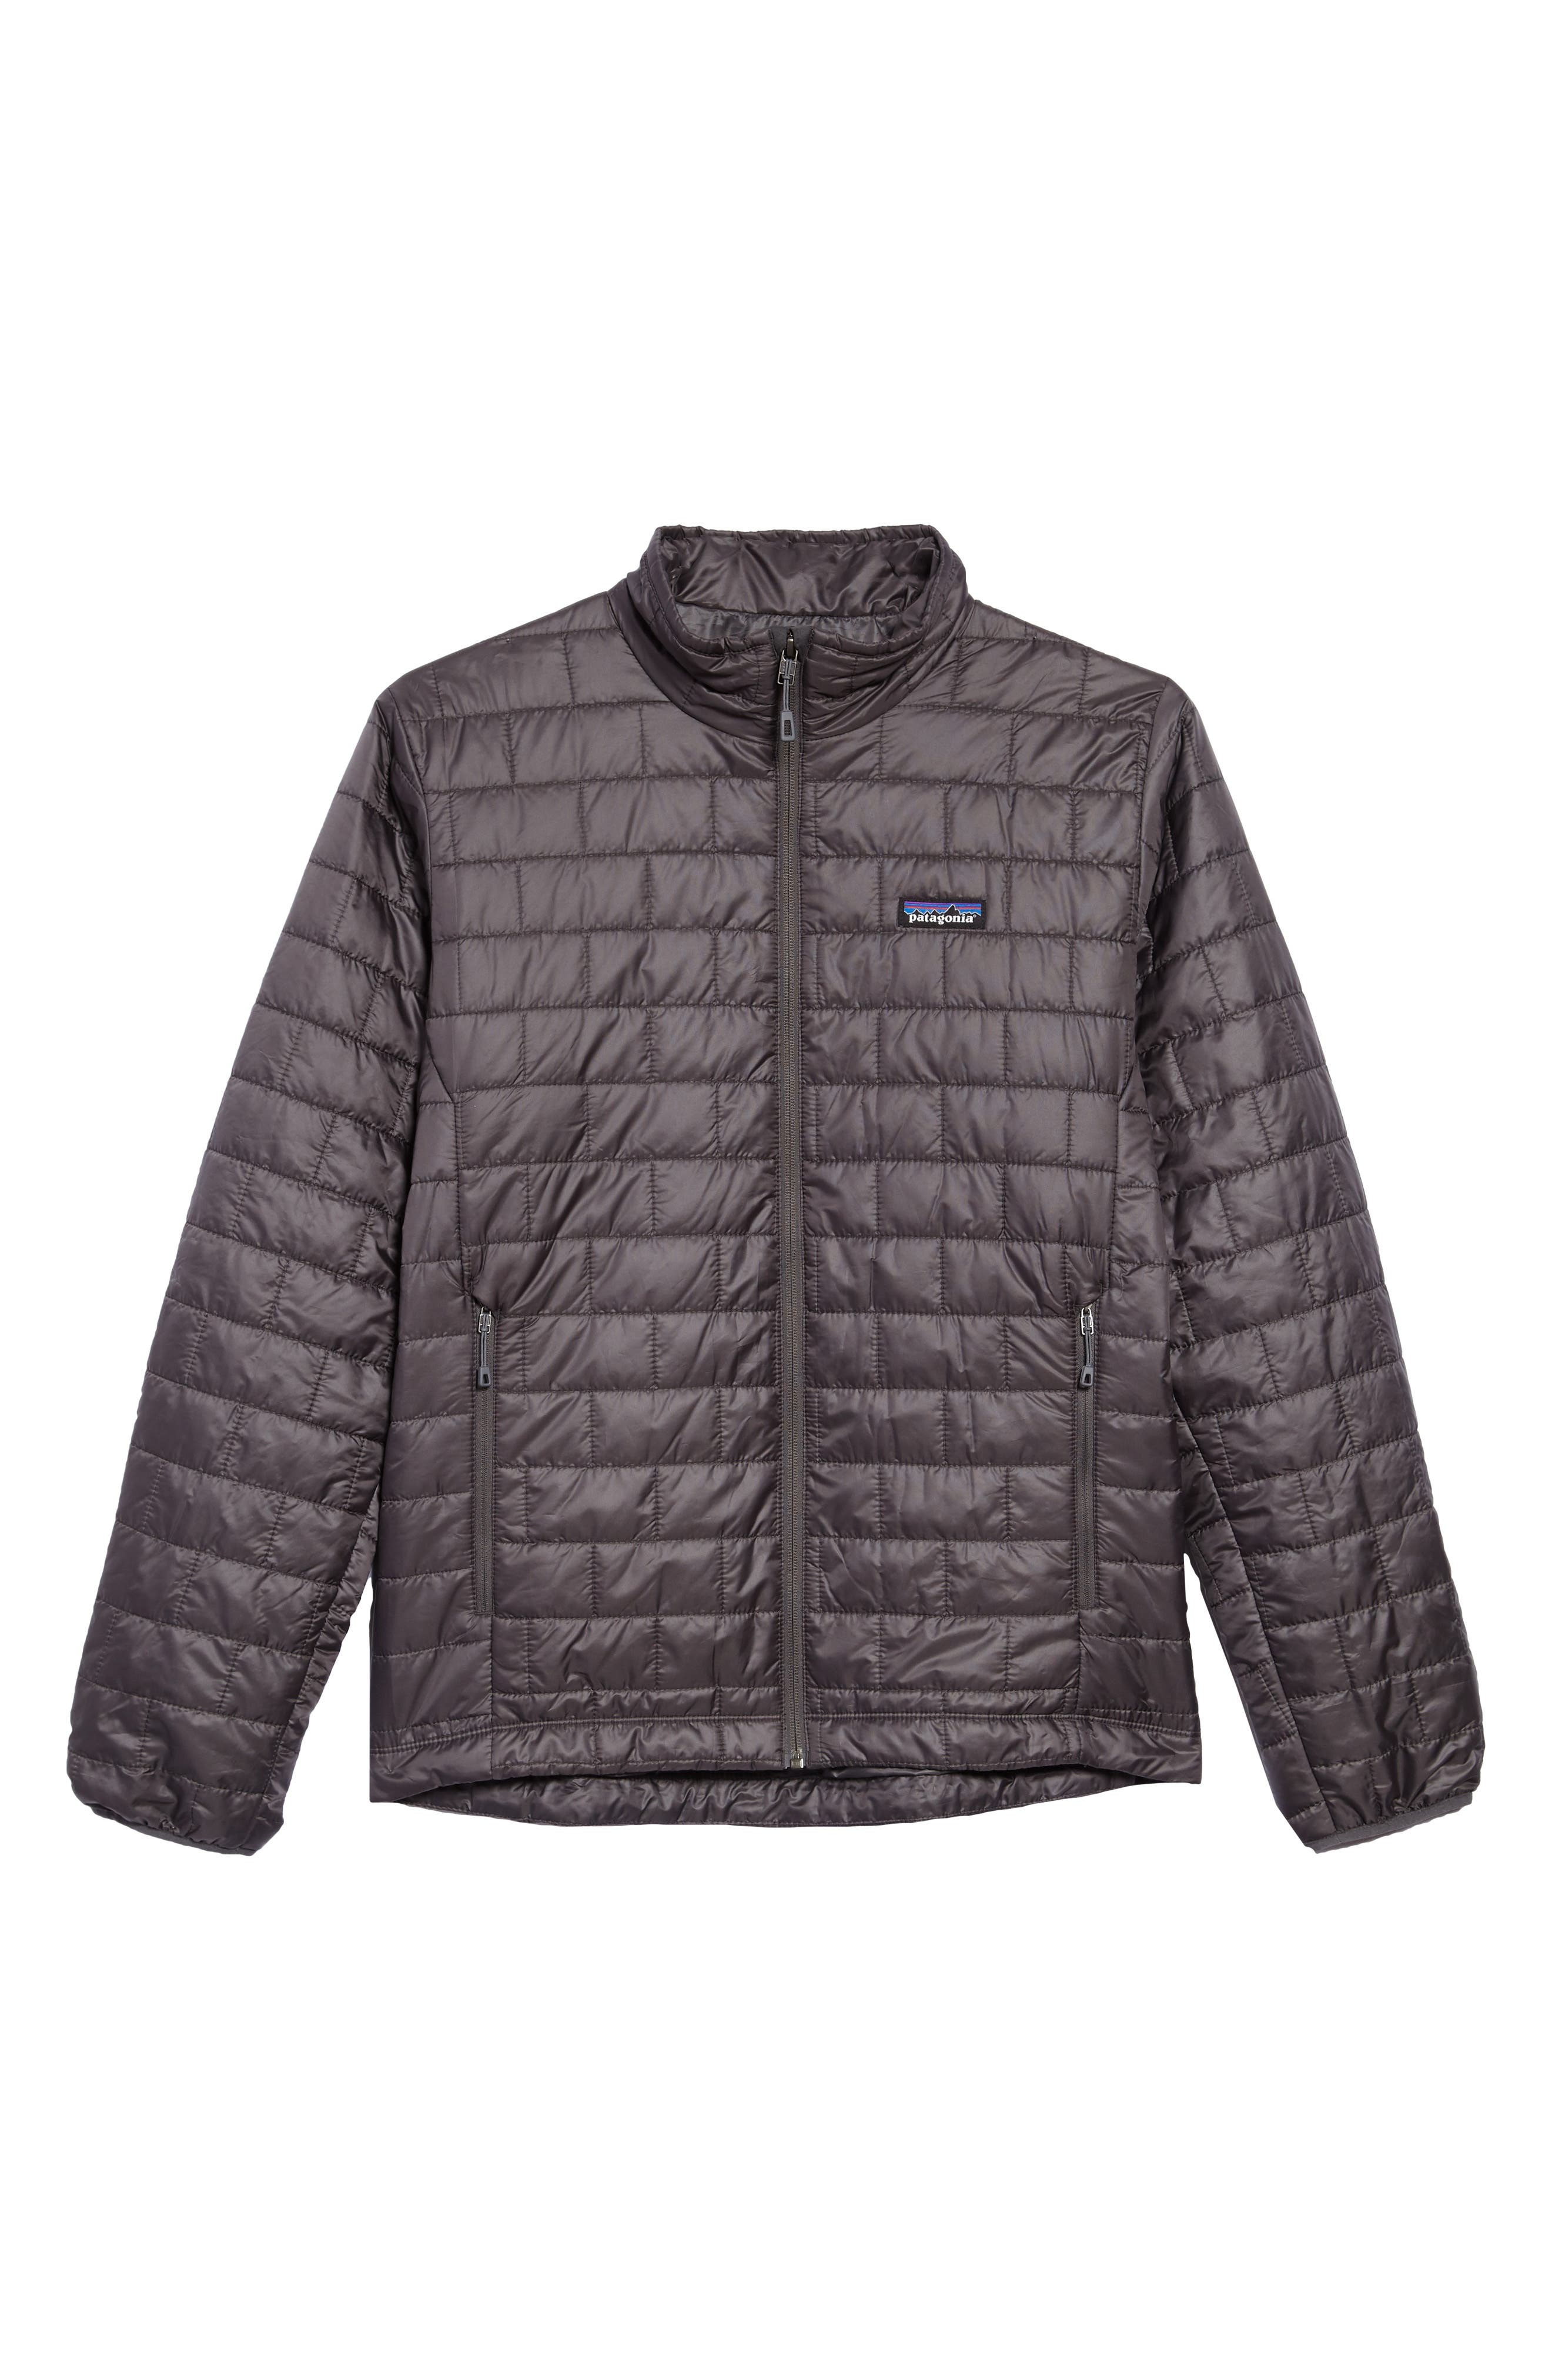 Patagonia Men S Jackets Coats Parkas Sustainable